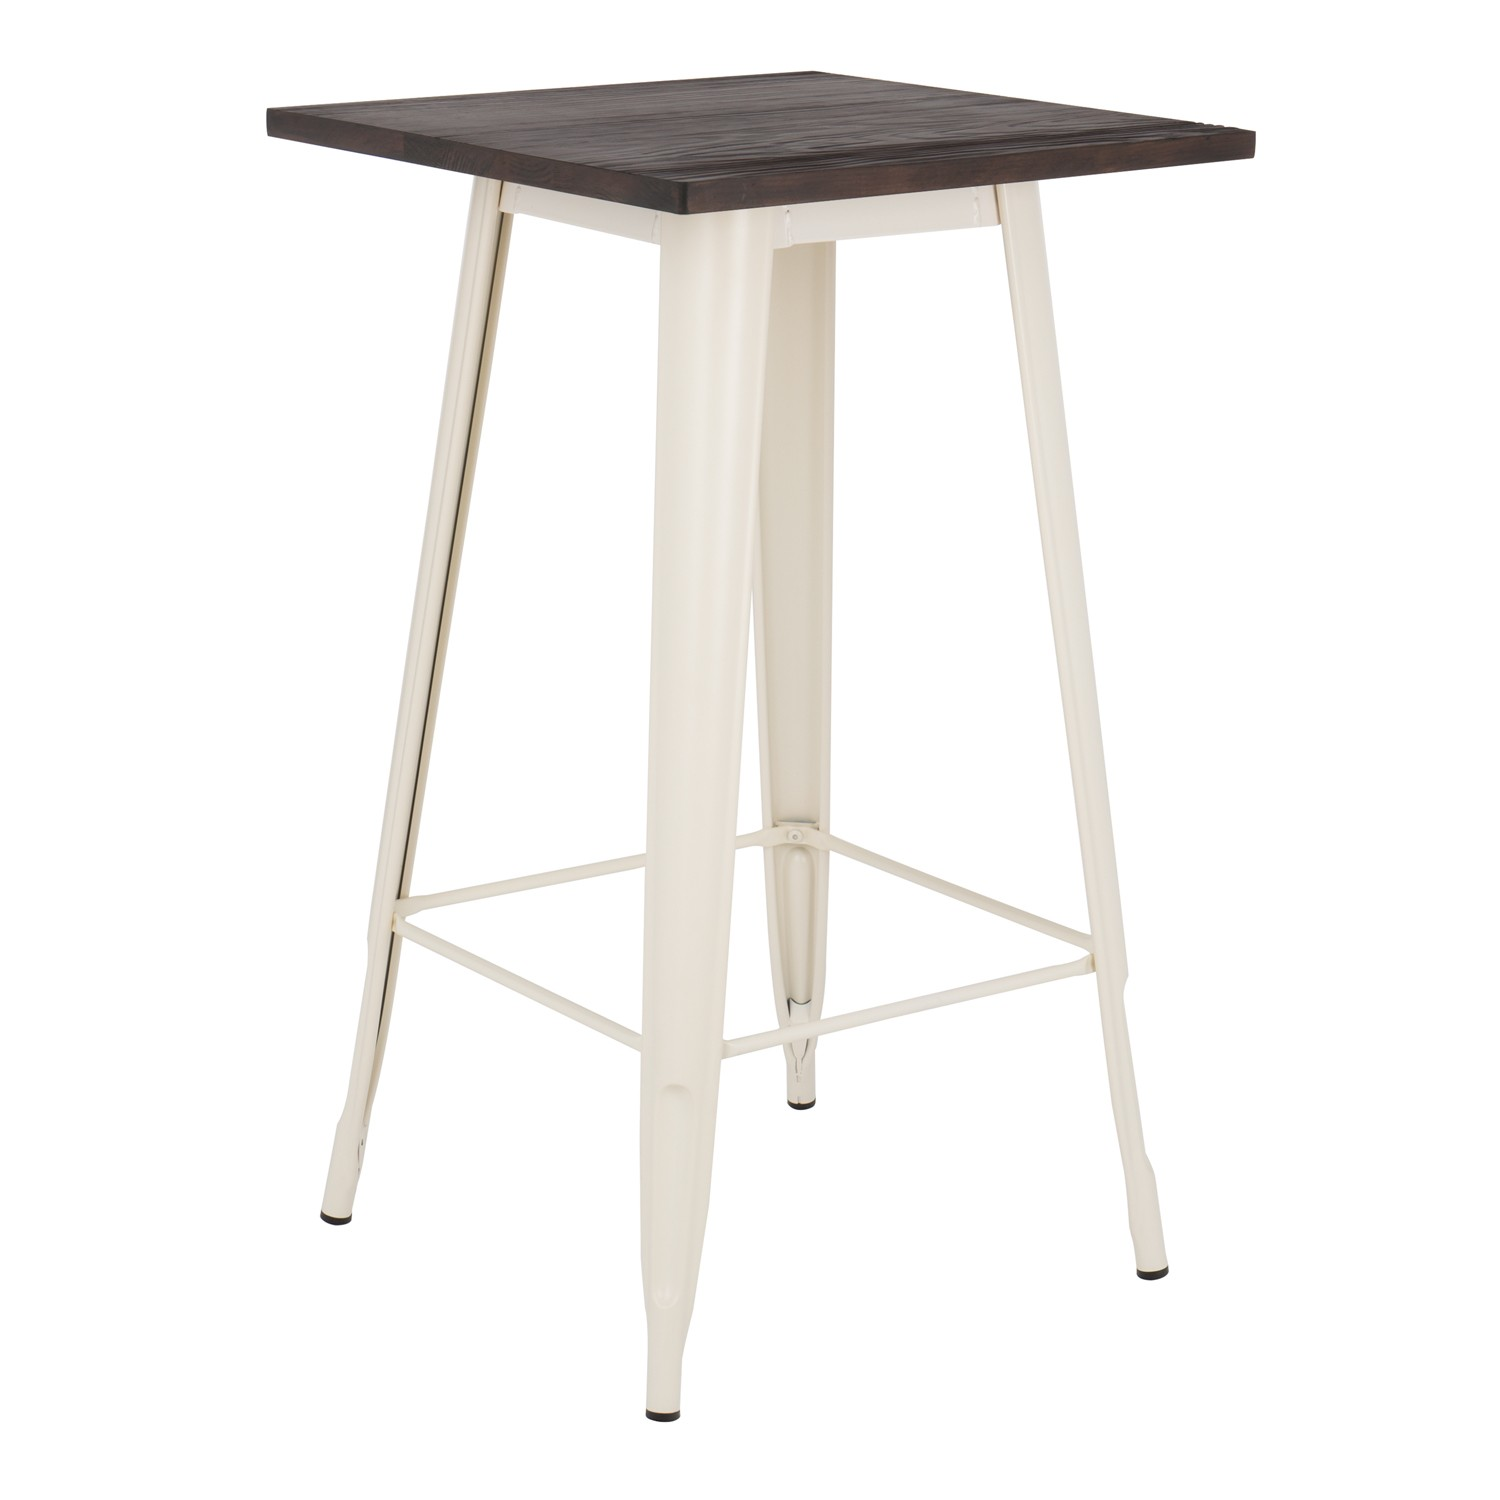 Wooden Matte LIX High Table, gallery image 1